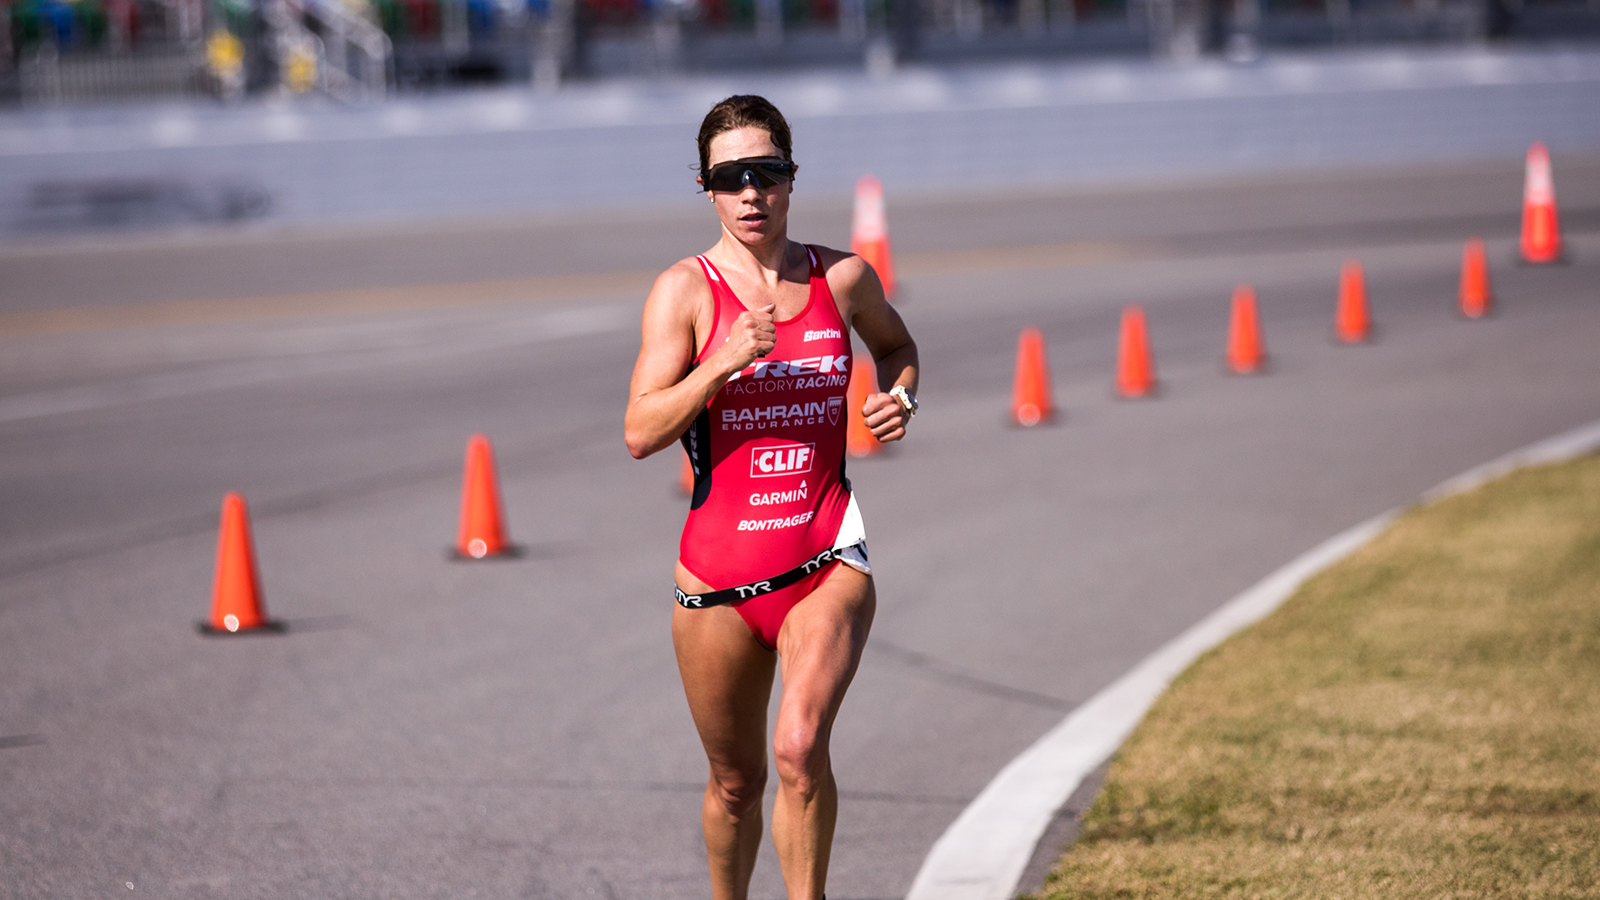 Race Preview: Ironman 70.3 St. George